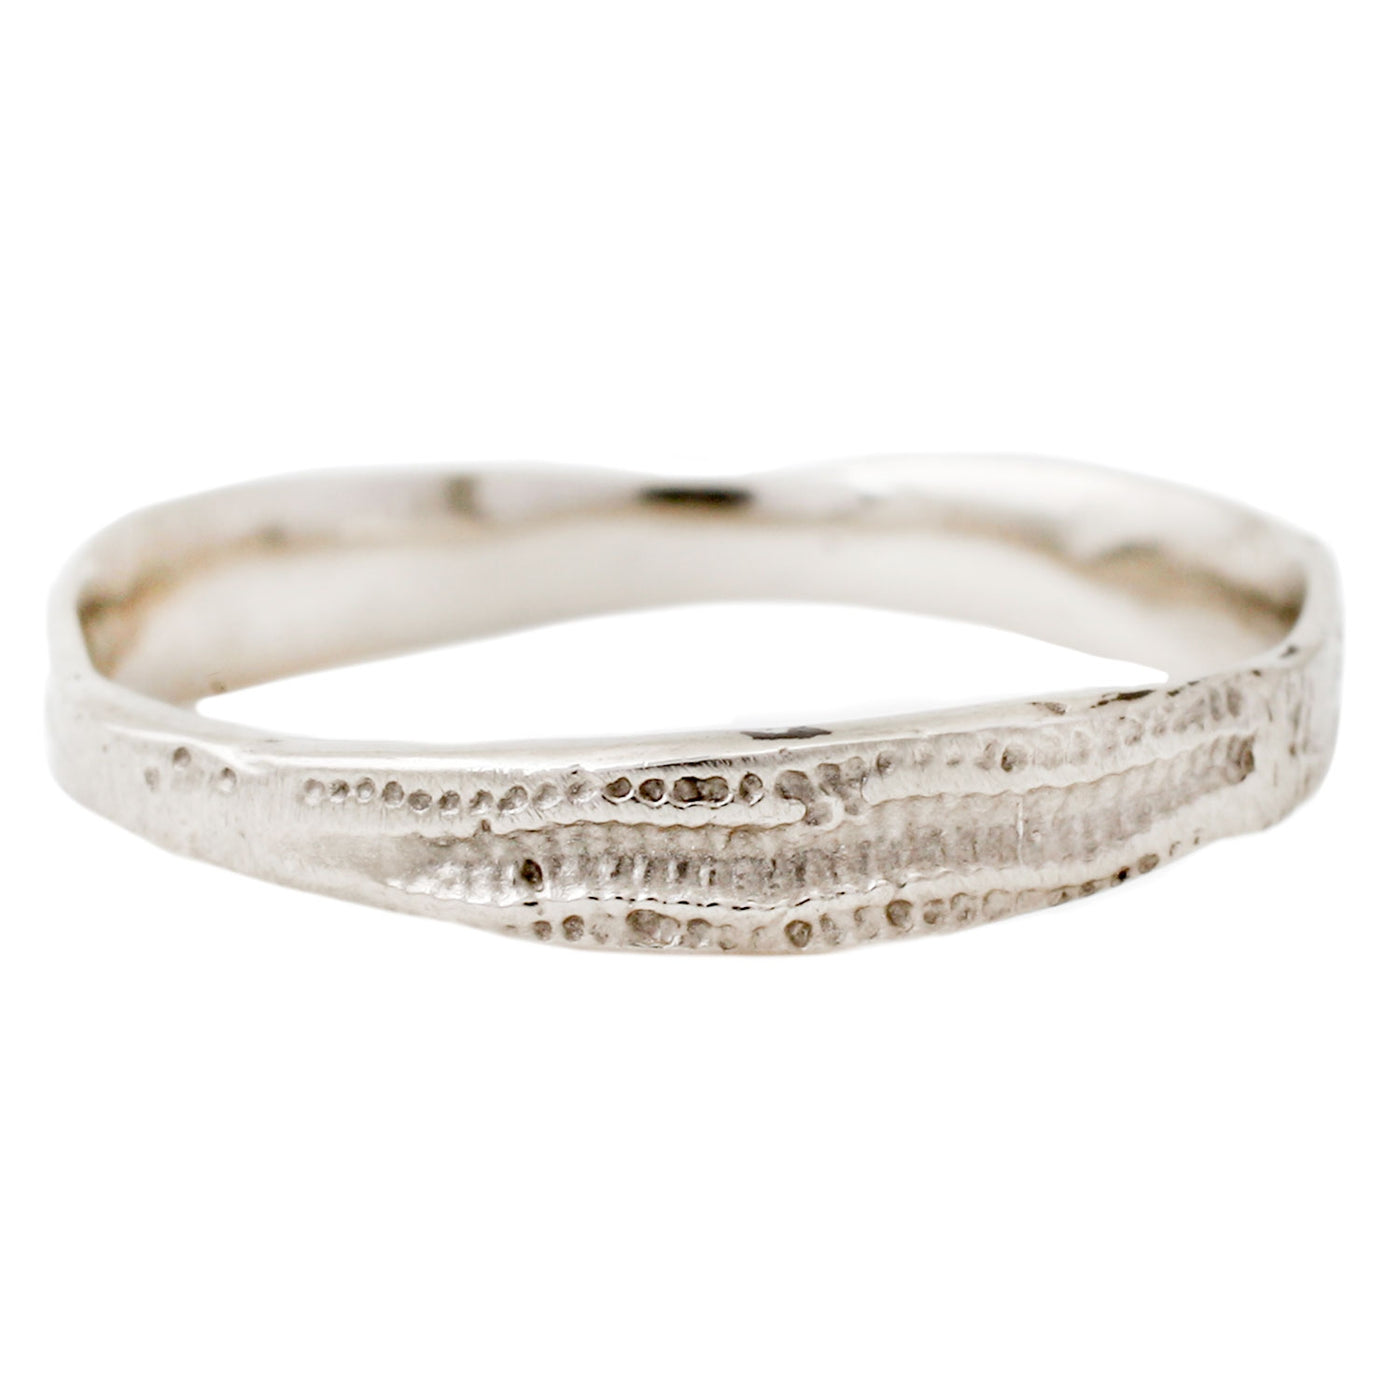 Lauren Wolf Jewelry - White Gold Urchin Band